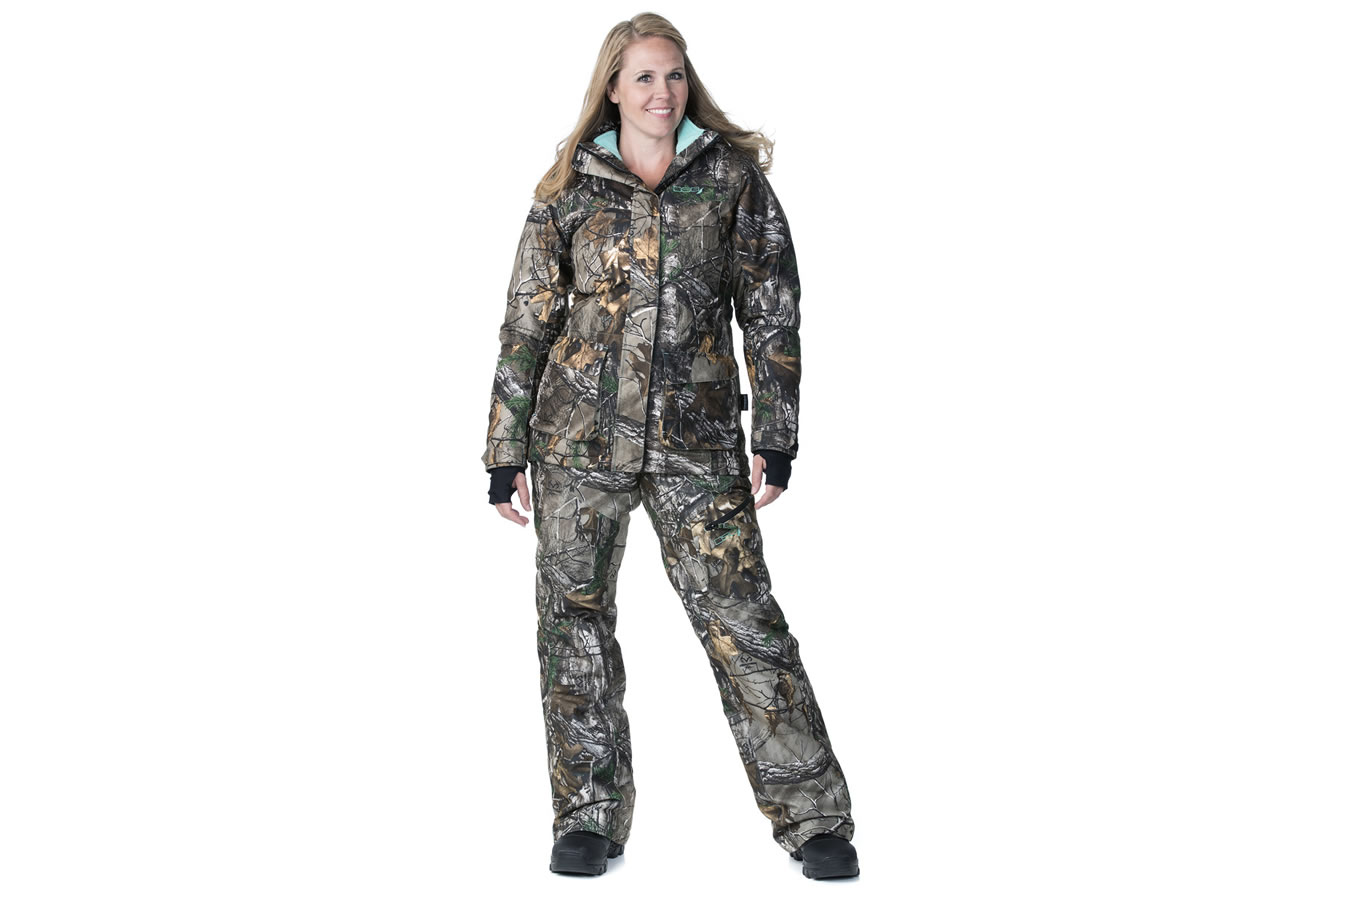 b9fb4dbba6891 Dsg Outerwear Kylie 3-in-1 Hunting Jacket Realtree Xtra | Vance Outdoors